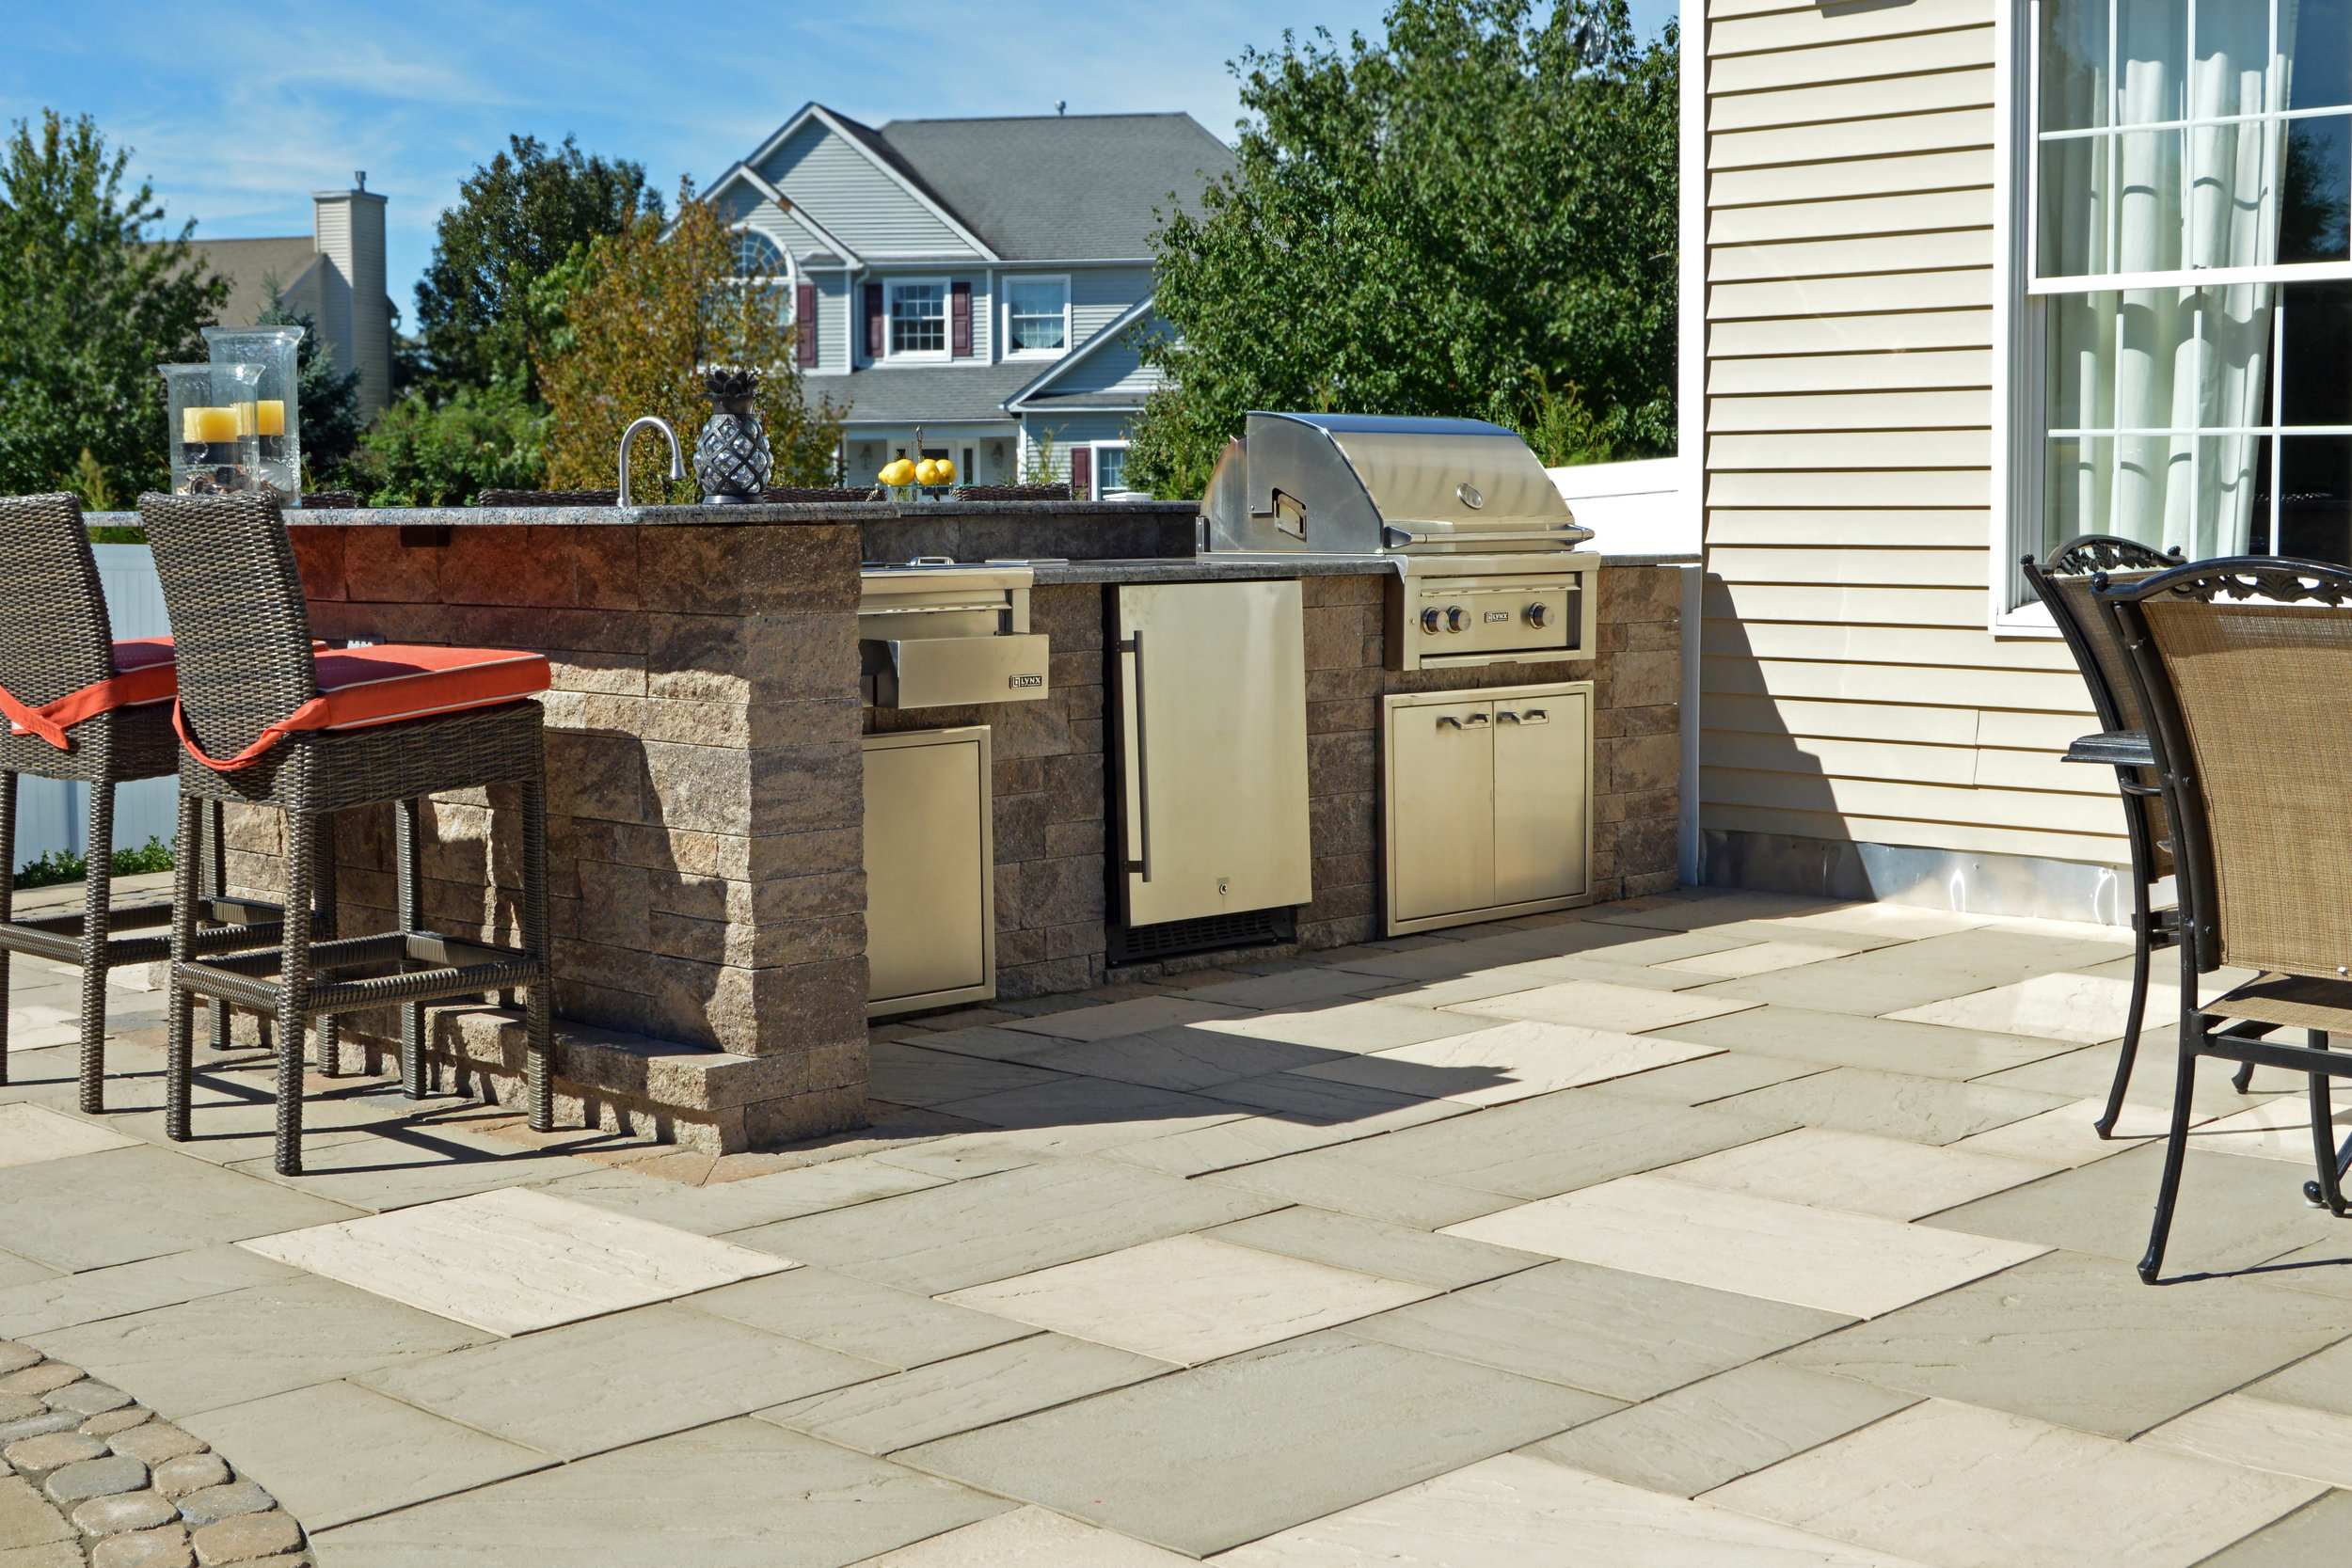 Smithtown, NY custom outdoor kitchen and bar